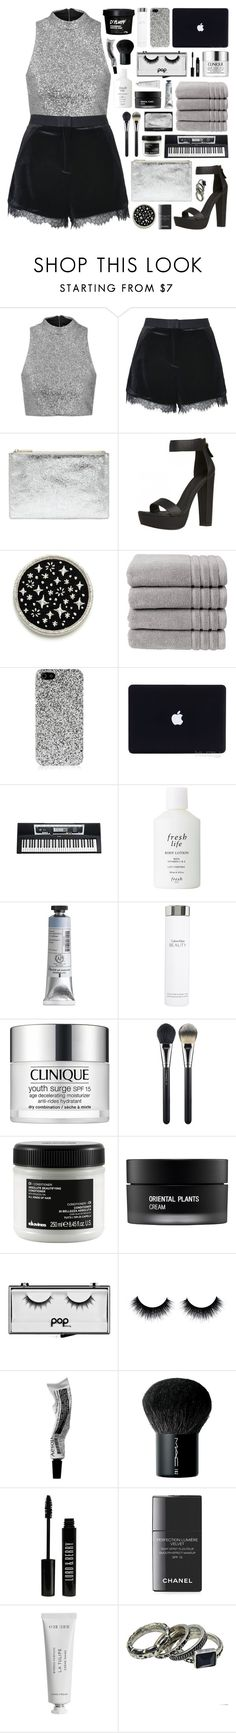 """""""//shimmer//"""" by bananafrog ❤ liked on Polyvore featuring Topshop, Whistles, Christy, Yves Saint Laurent, Yamaha, Fresh, Calvin Klein, Clinique, MAC Cosmetics and Davines"""